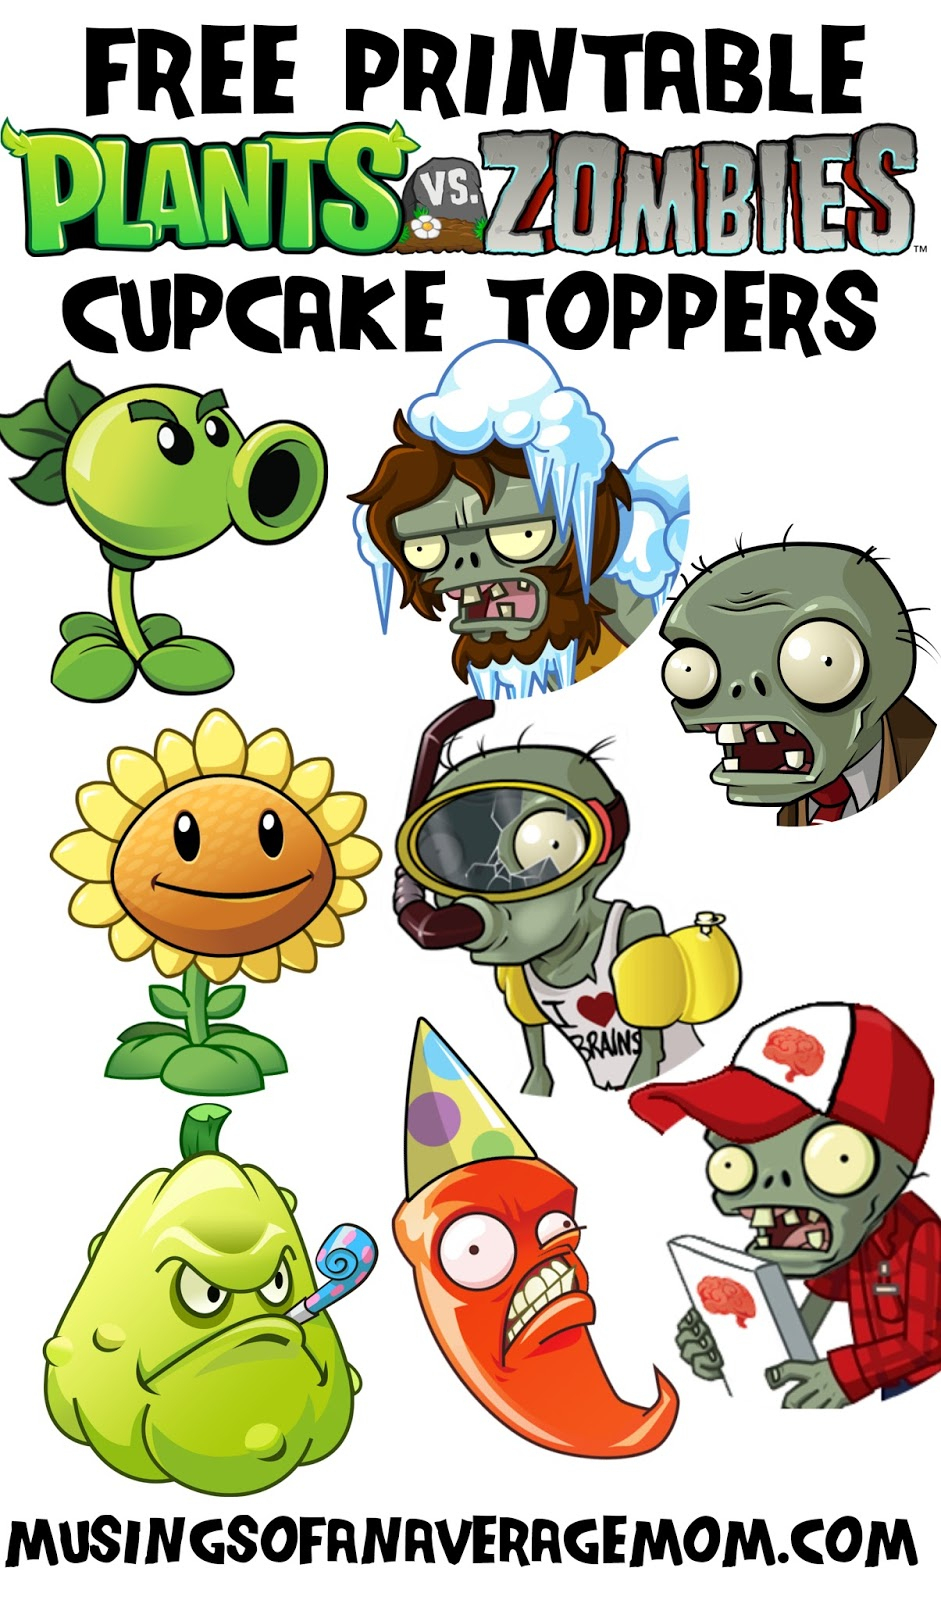 Musings Of An Average Mom: Plants Vs. Zombies Cupcake Toppers - Plants Vs Zombies Free Printable Invitations